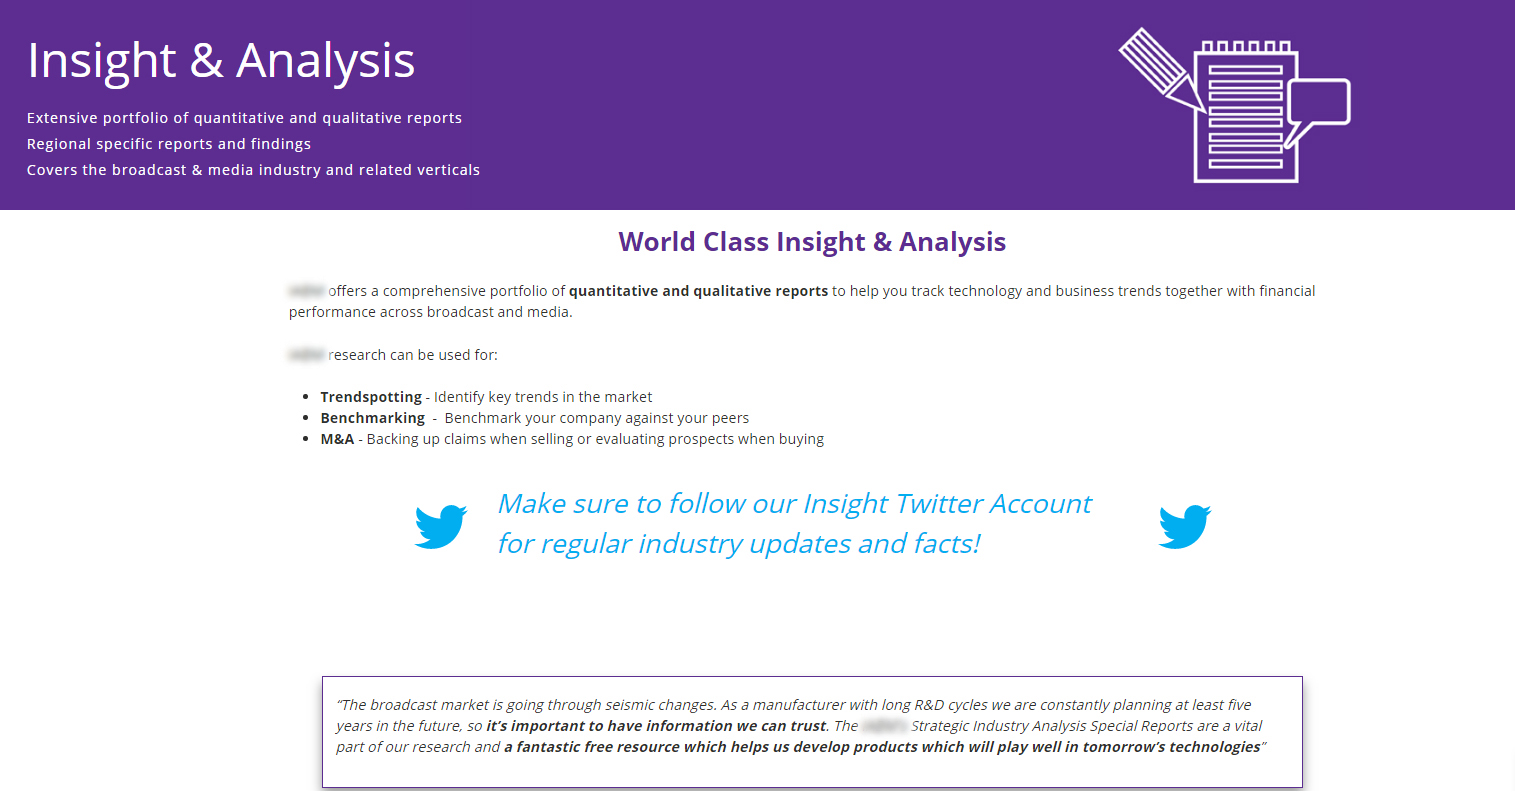 Insight and Analysis